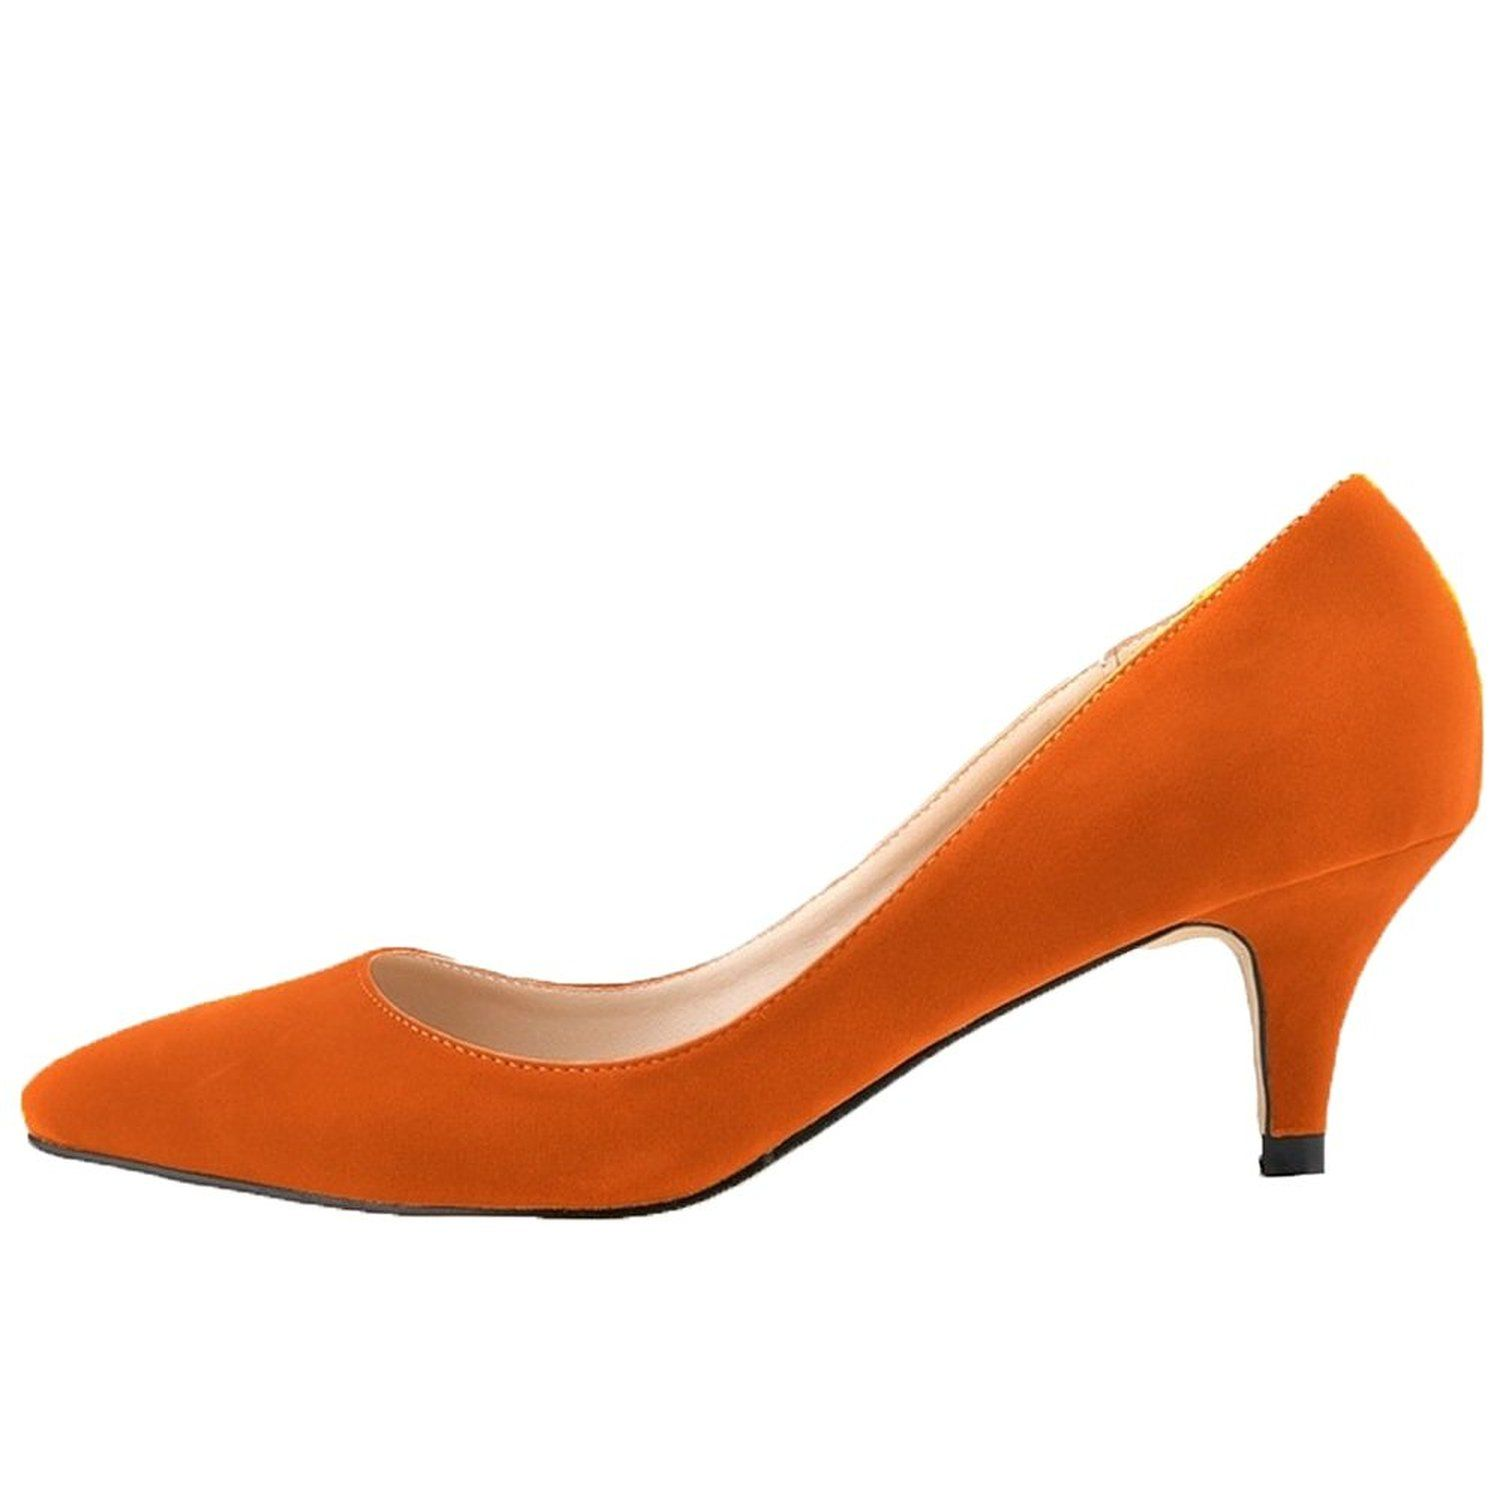 HooH Women's Pointed-toe Suede Slip Candy Color Kitten Work Pump: Amazon.co.uk: Shoes & Bags